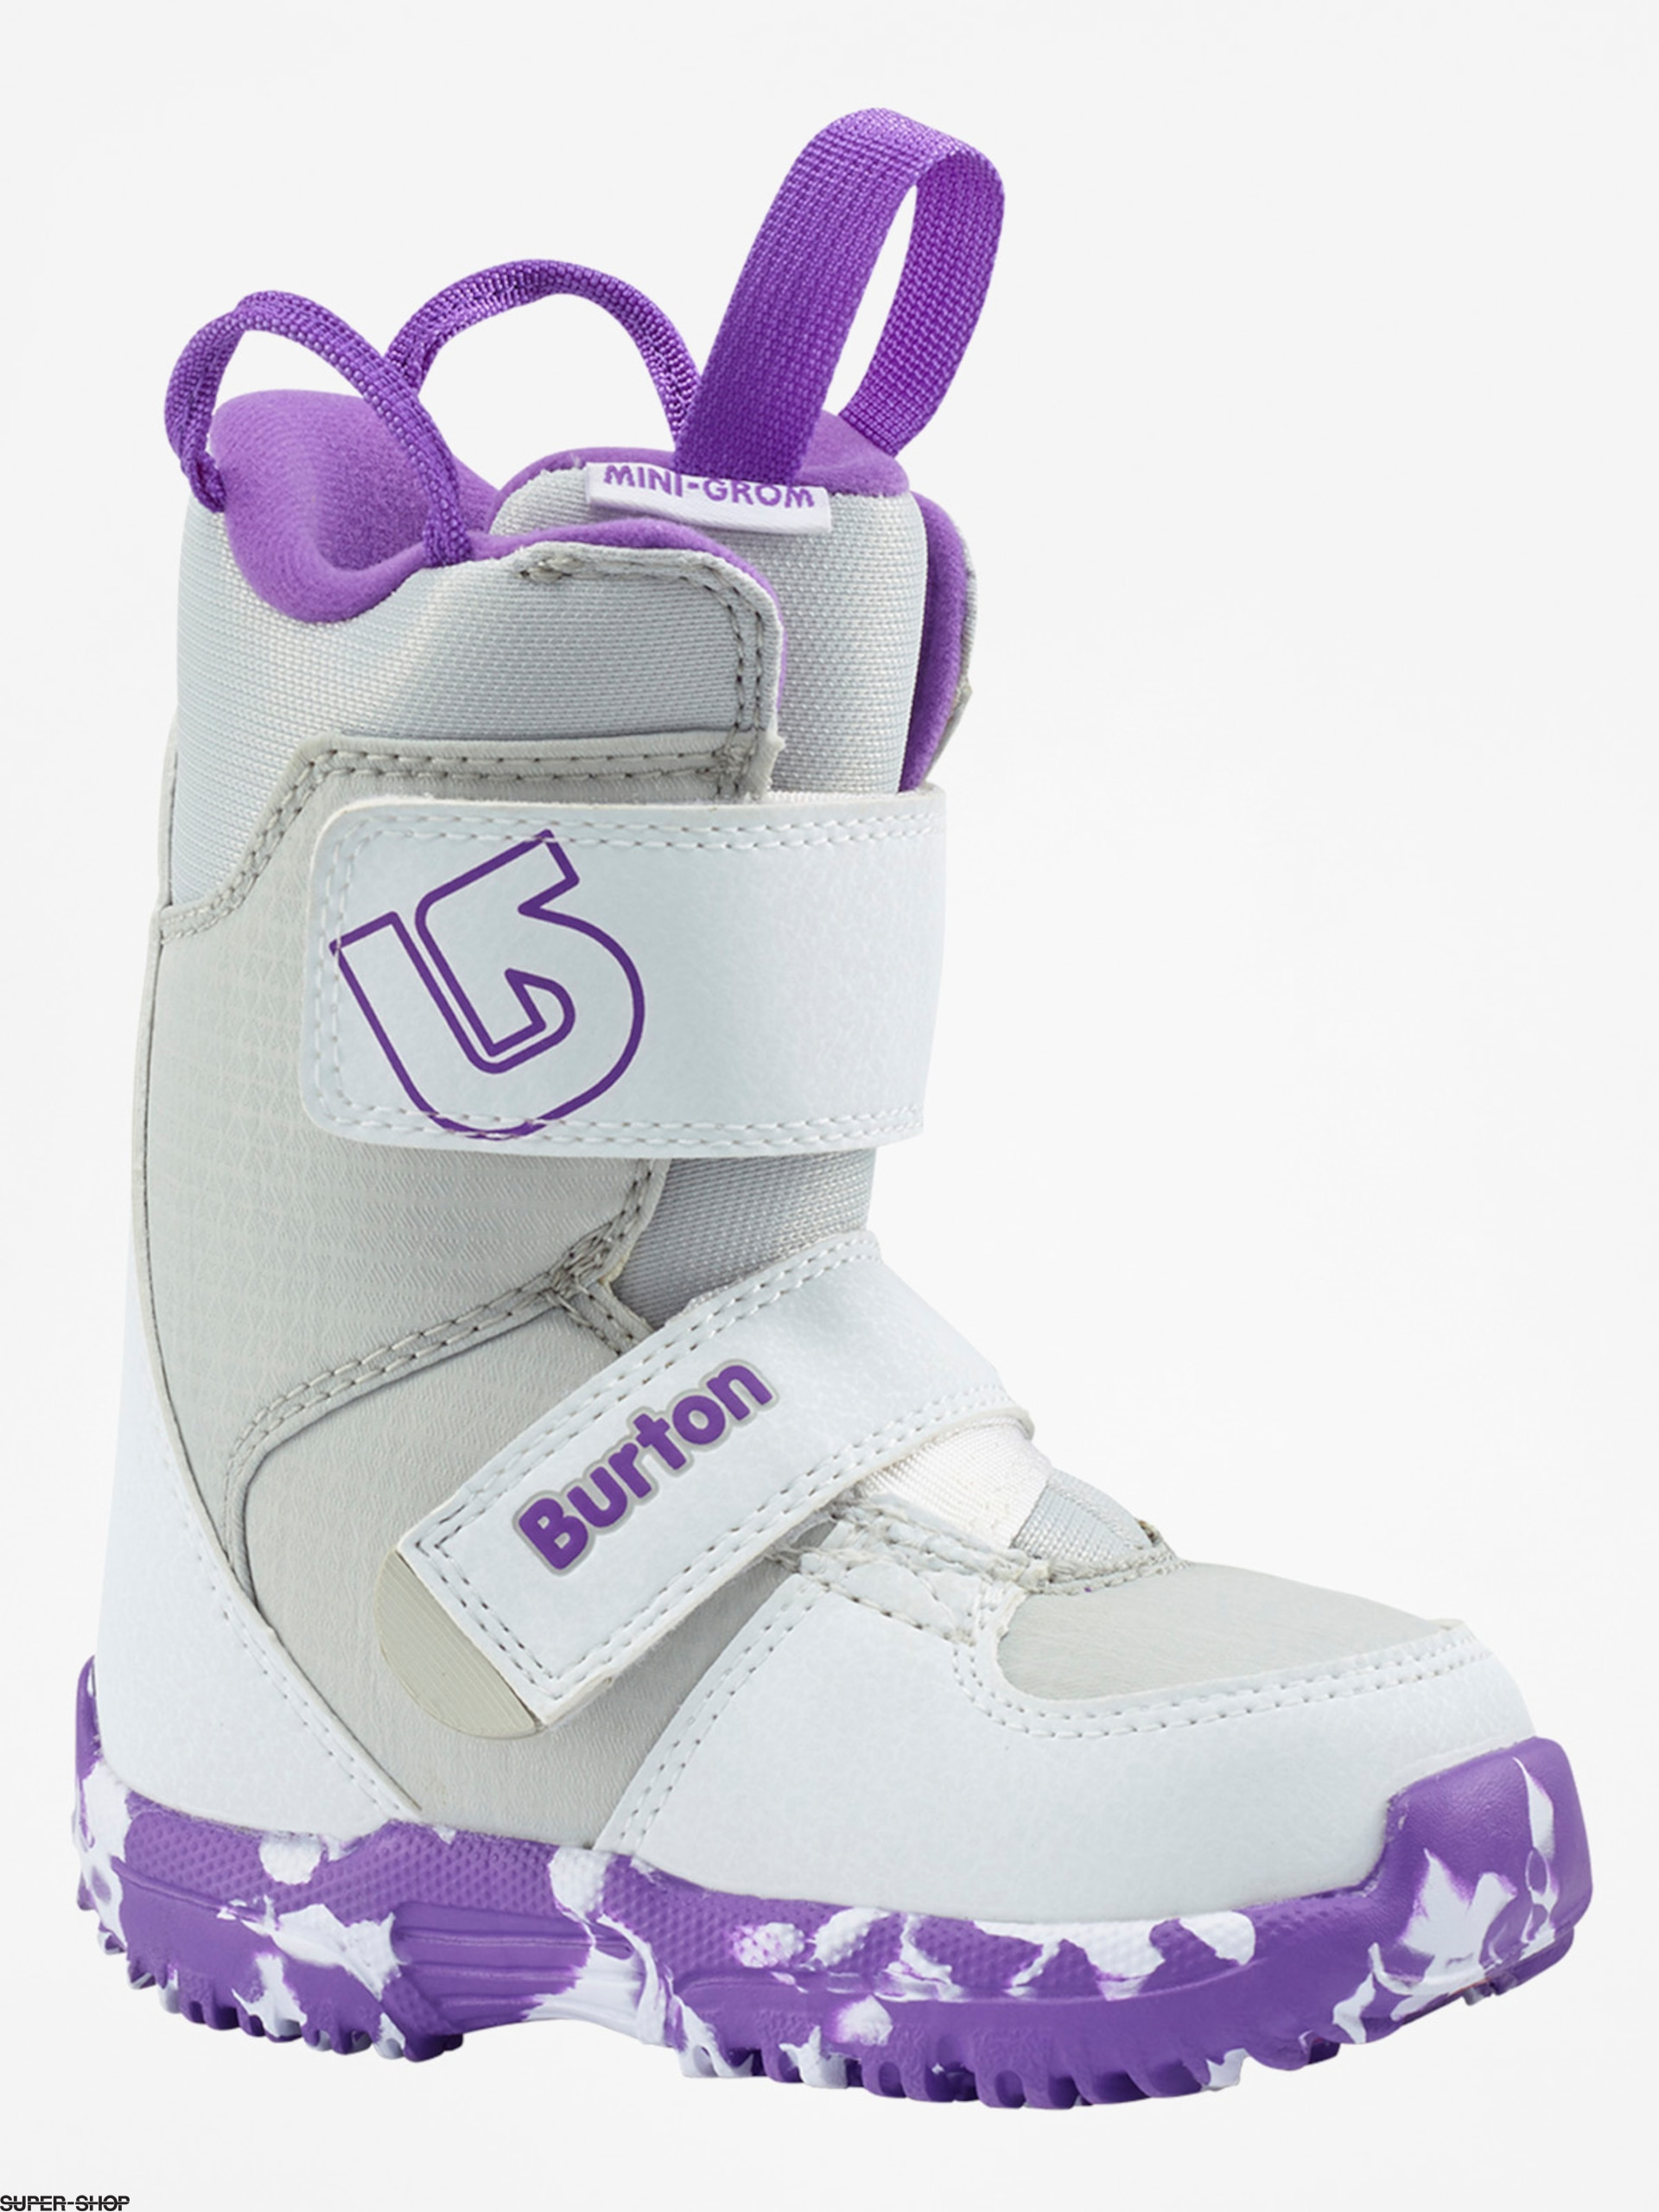 Burton Snowboard boots Mini Grom (white/purple)